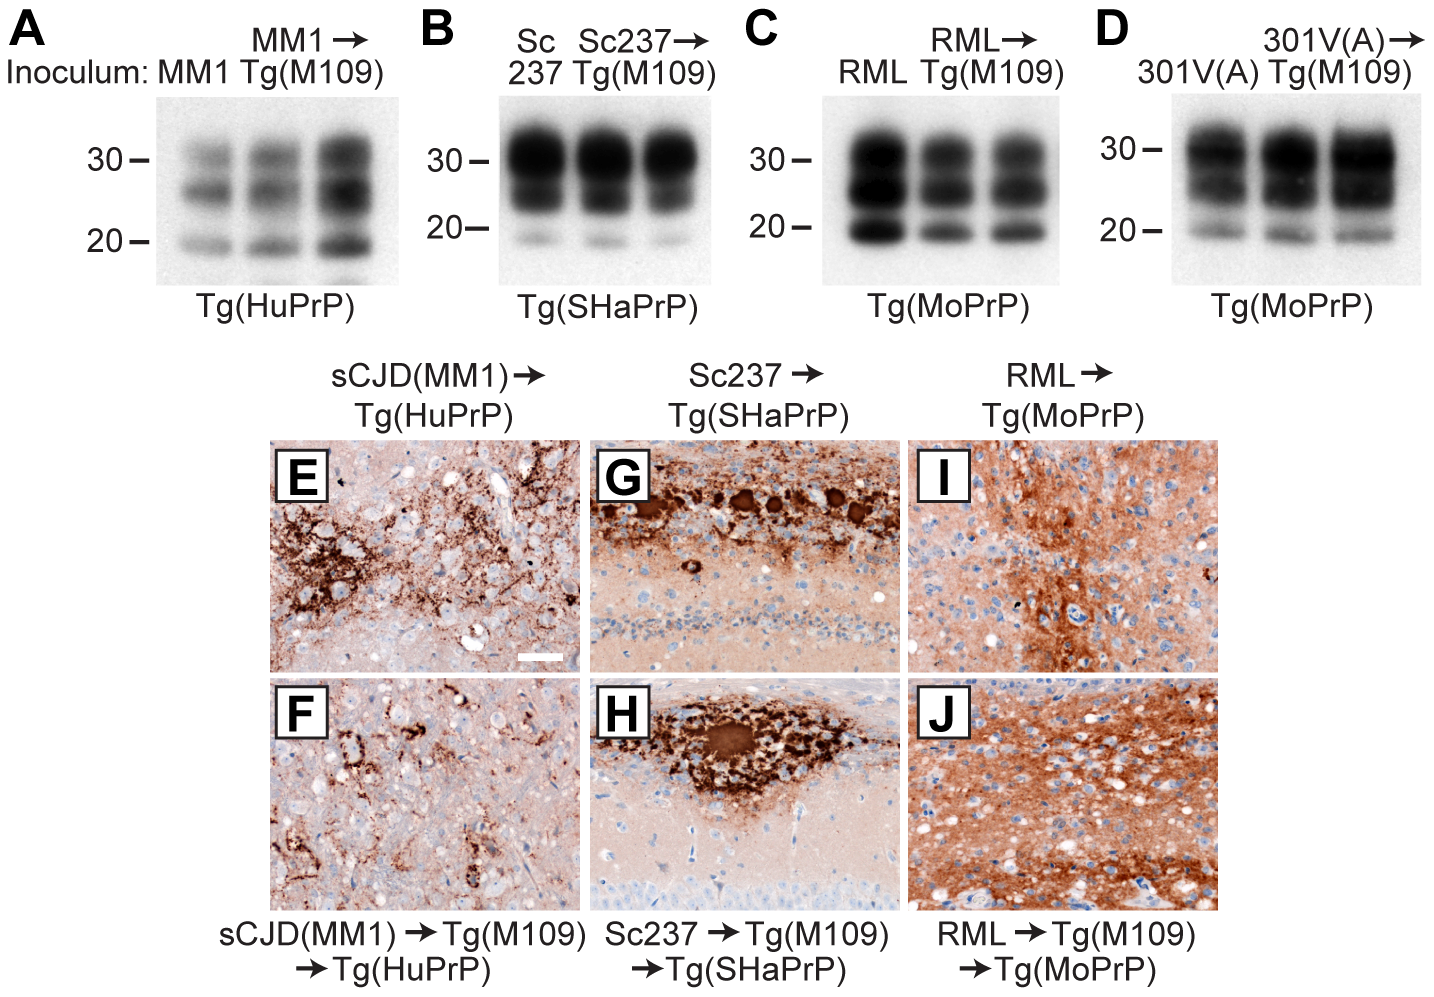 Analysis of PK-resistant PrP<sup>Sc</sup> and cerebral PrP<sup>Sc</sup> deposition following retrotransmission of Tg(M109)-passaged prion isolates.